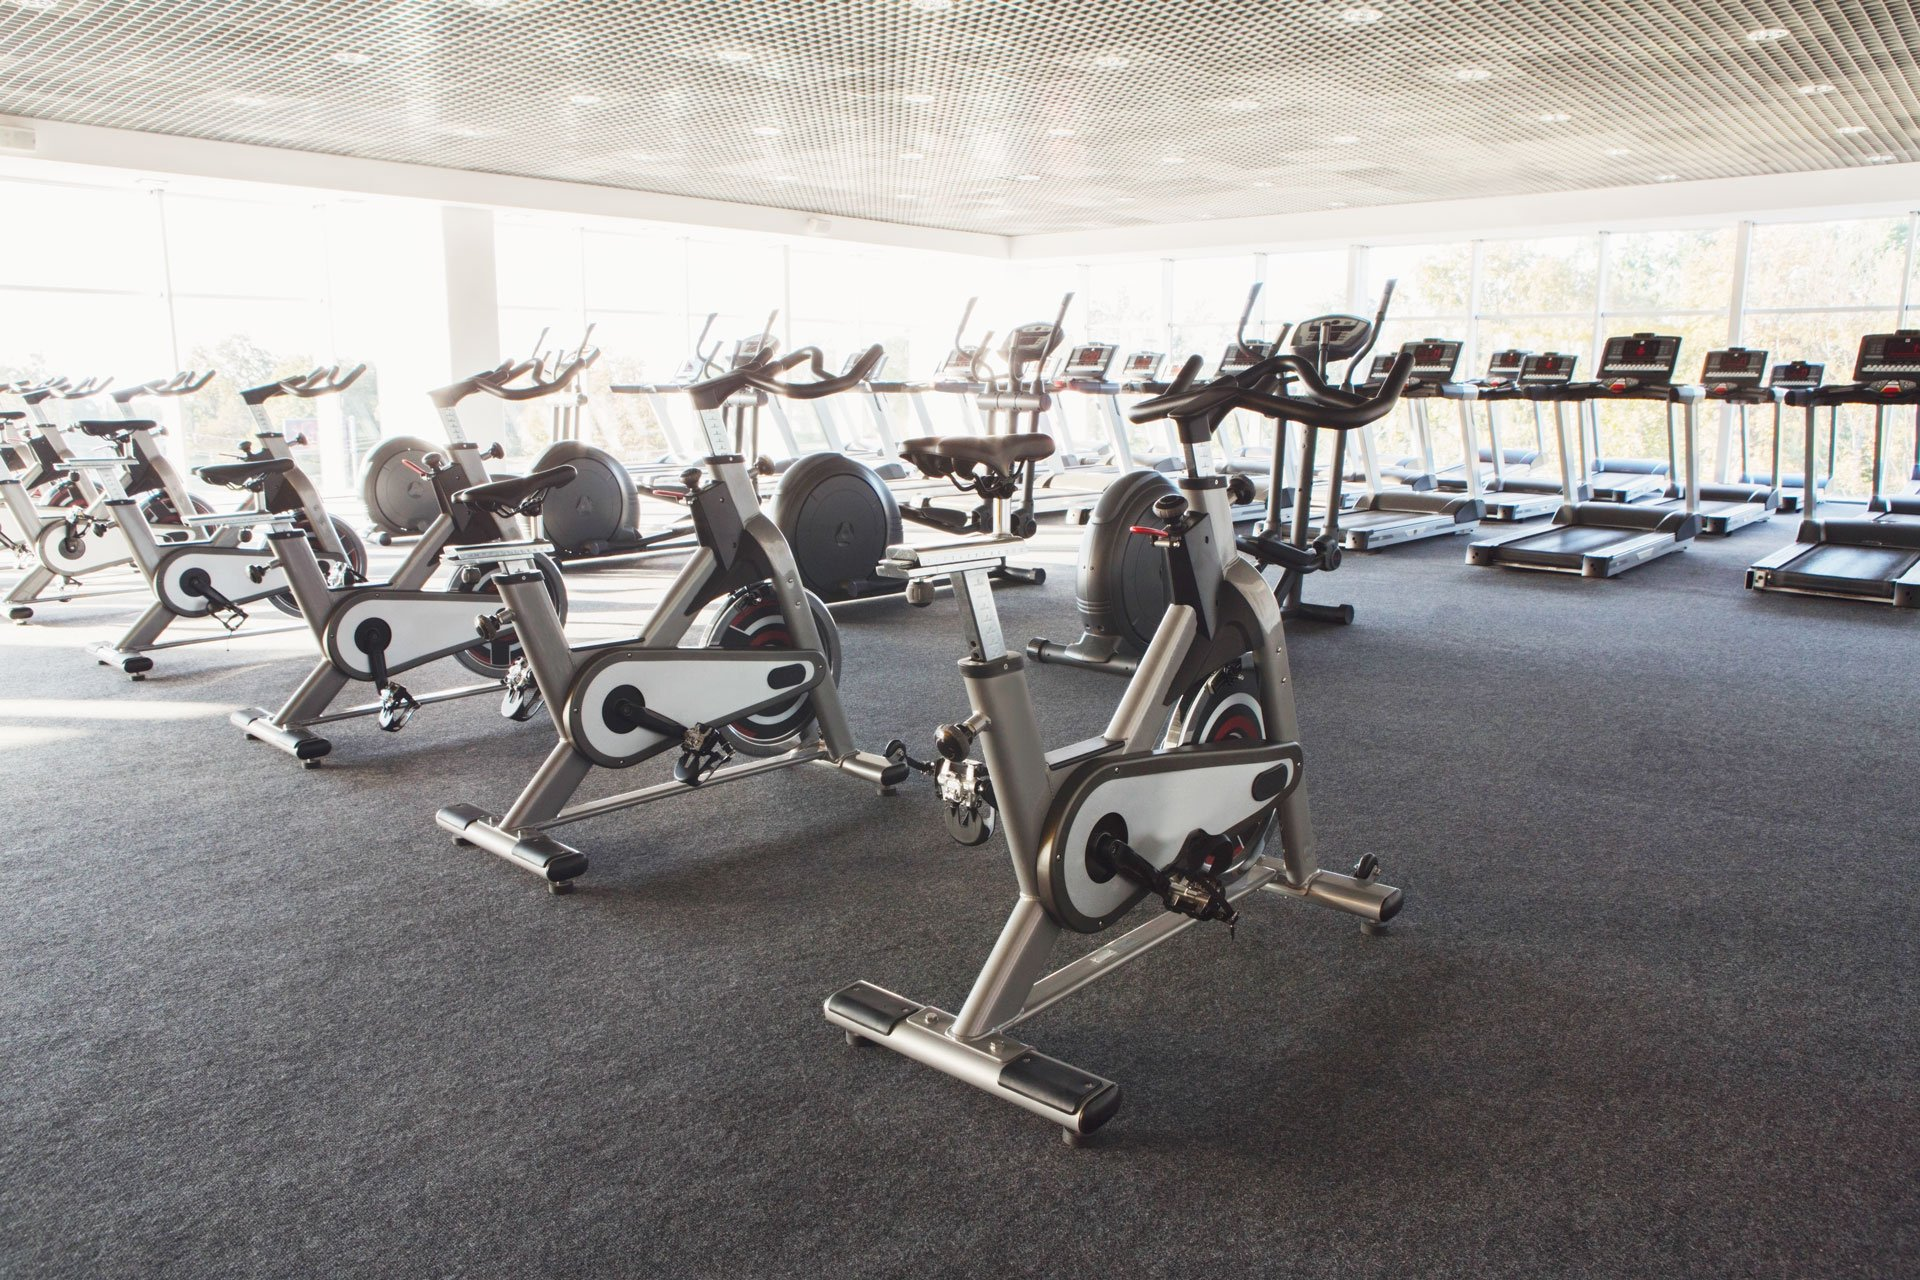 Exercise Bikes in New Gym